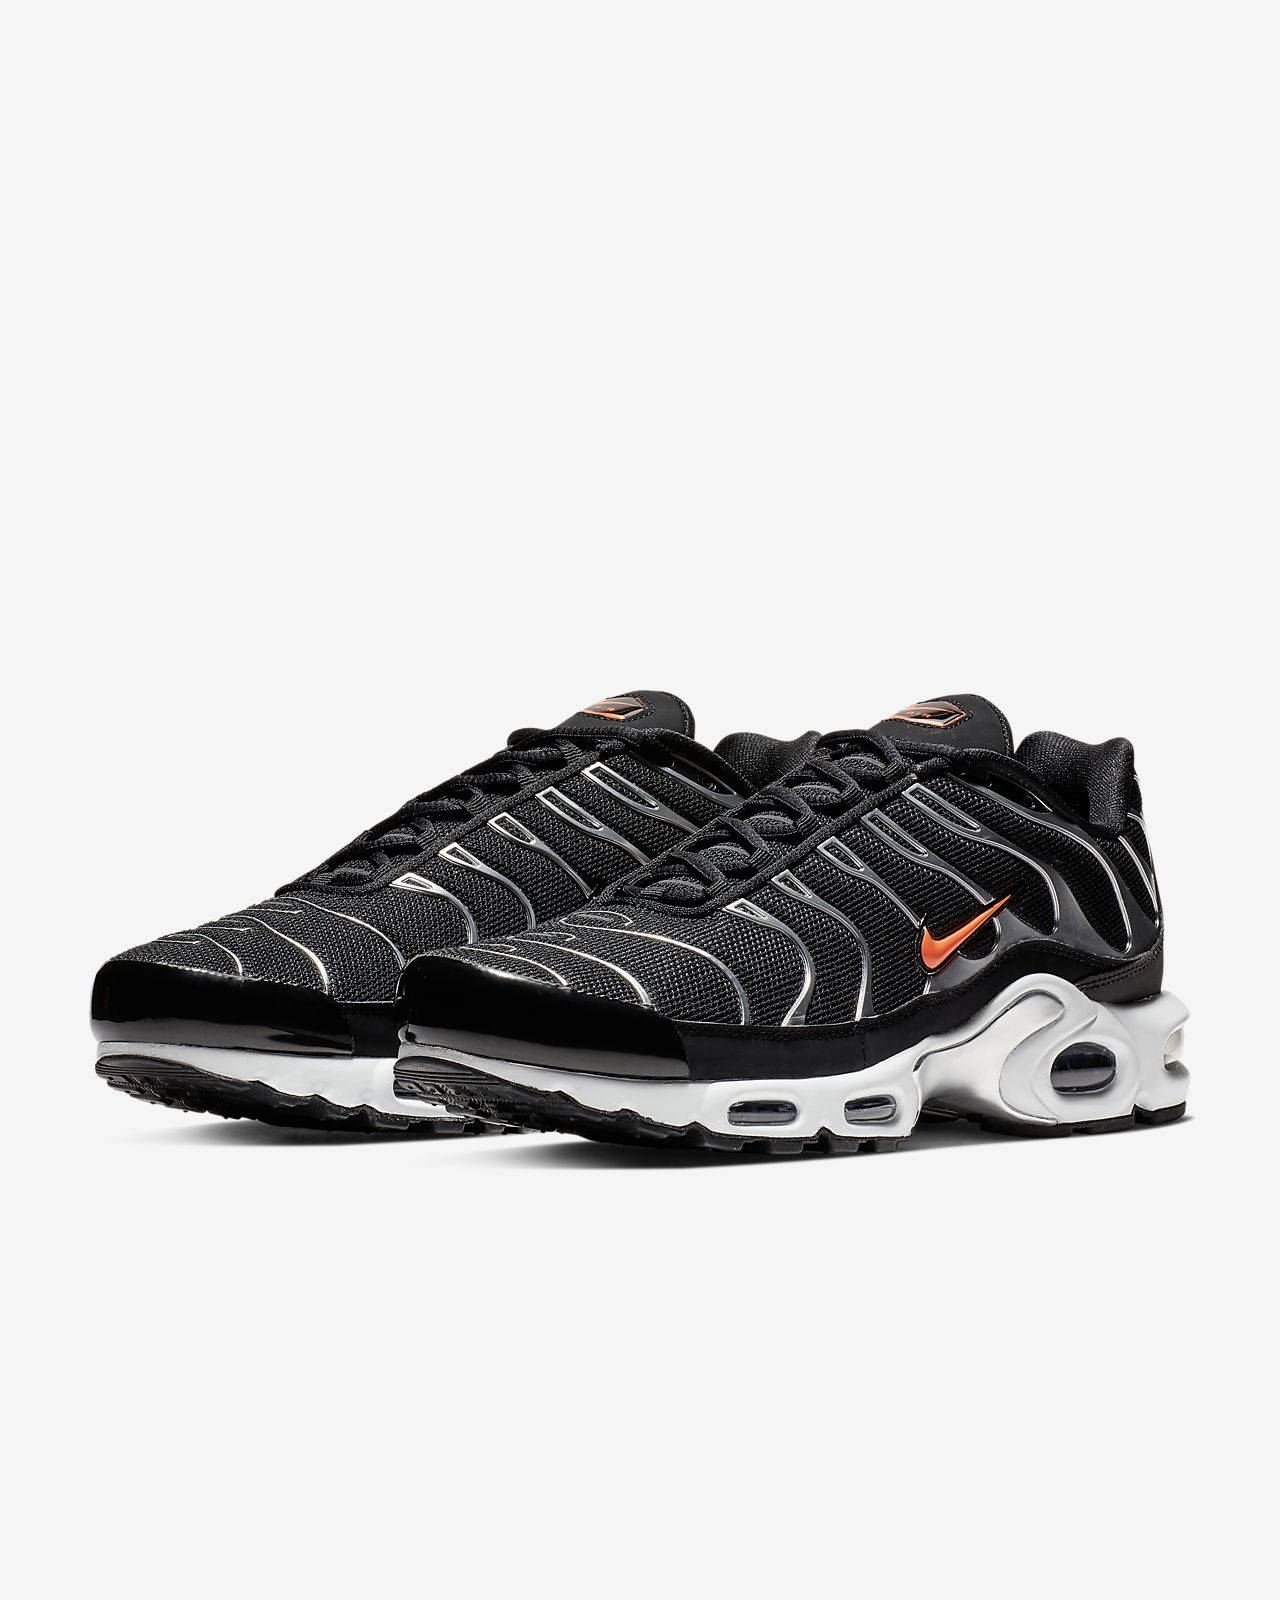 df72a5a3e071 Nike Air Max Plus TN SE Men s Shoe. Nike.com CA